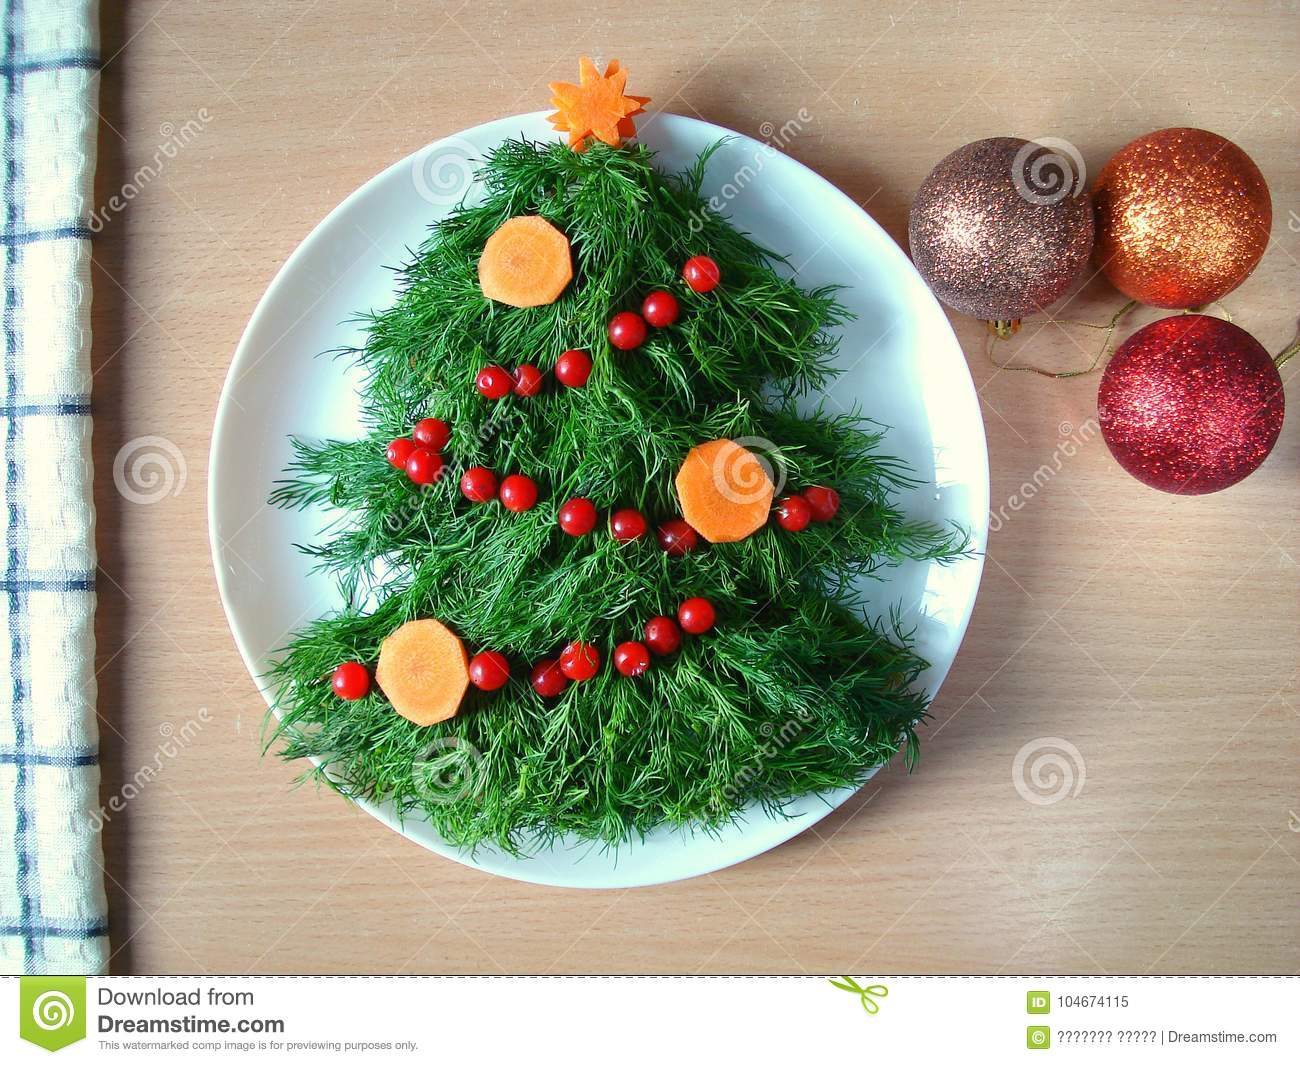 Salad Decoration For The New Year Salad In The Form Of A Christmas